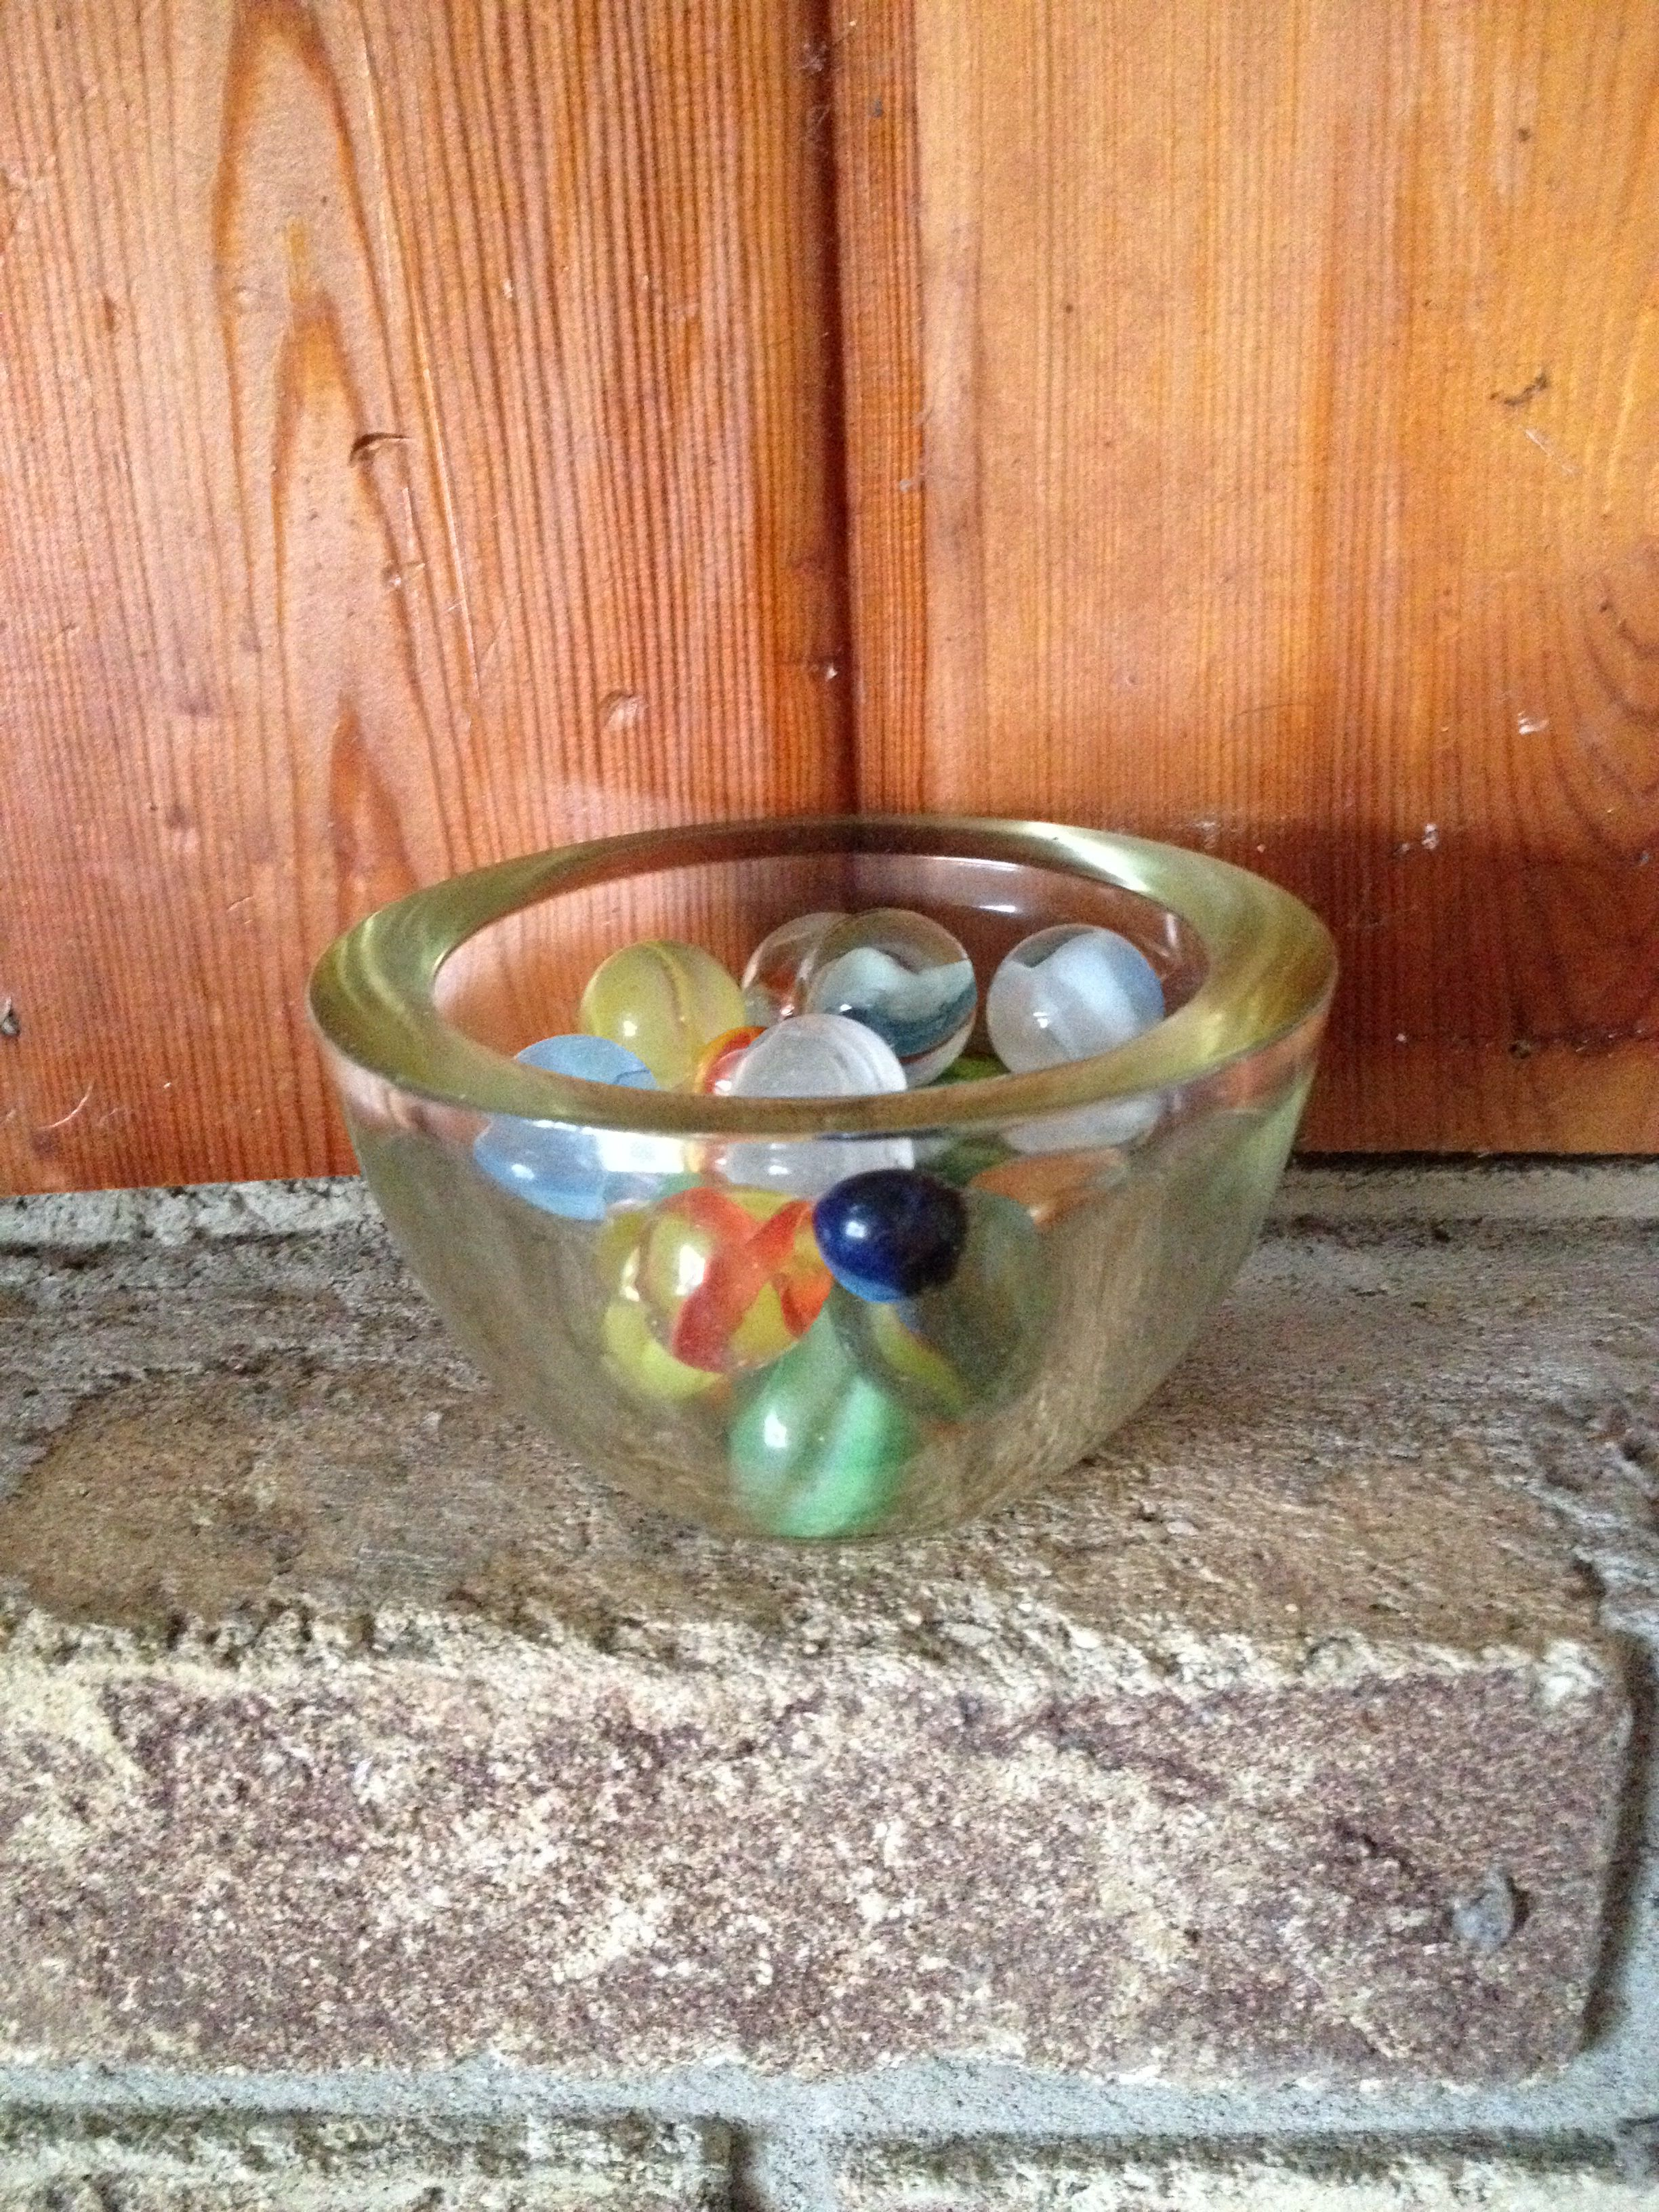 Small glass bowl purchased at goodwill for filled with large